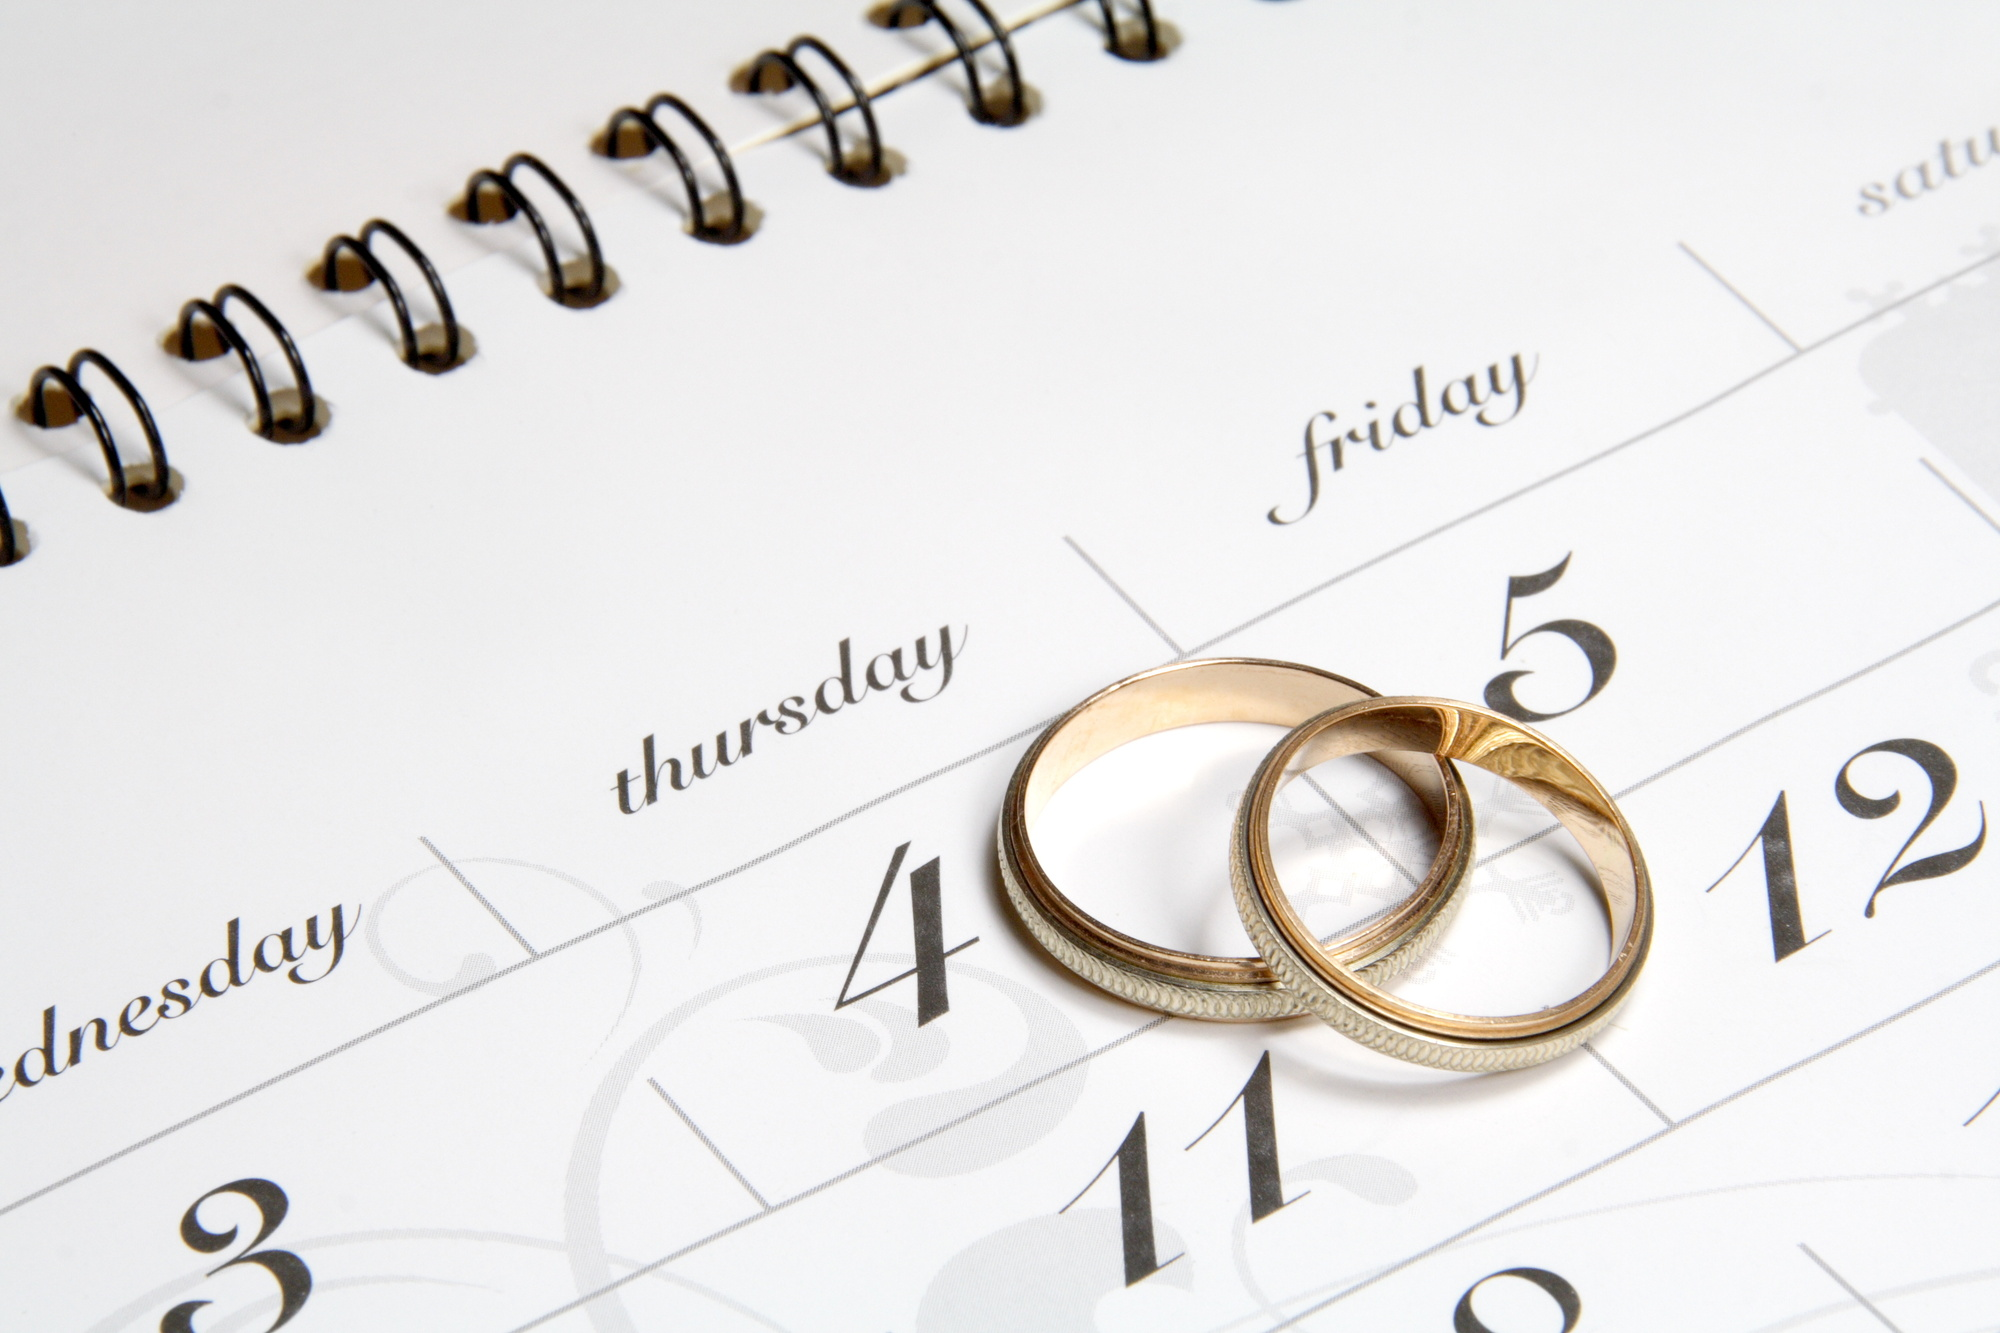 How To Start Planning A Wedding.The Ultimate Wedding Calendar How To Plan For Your Big Day